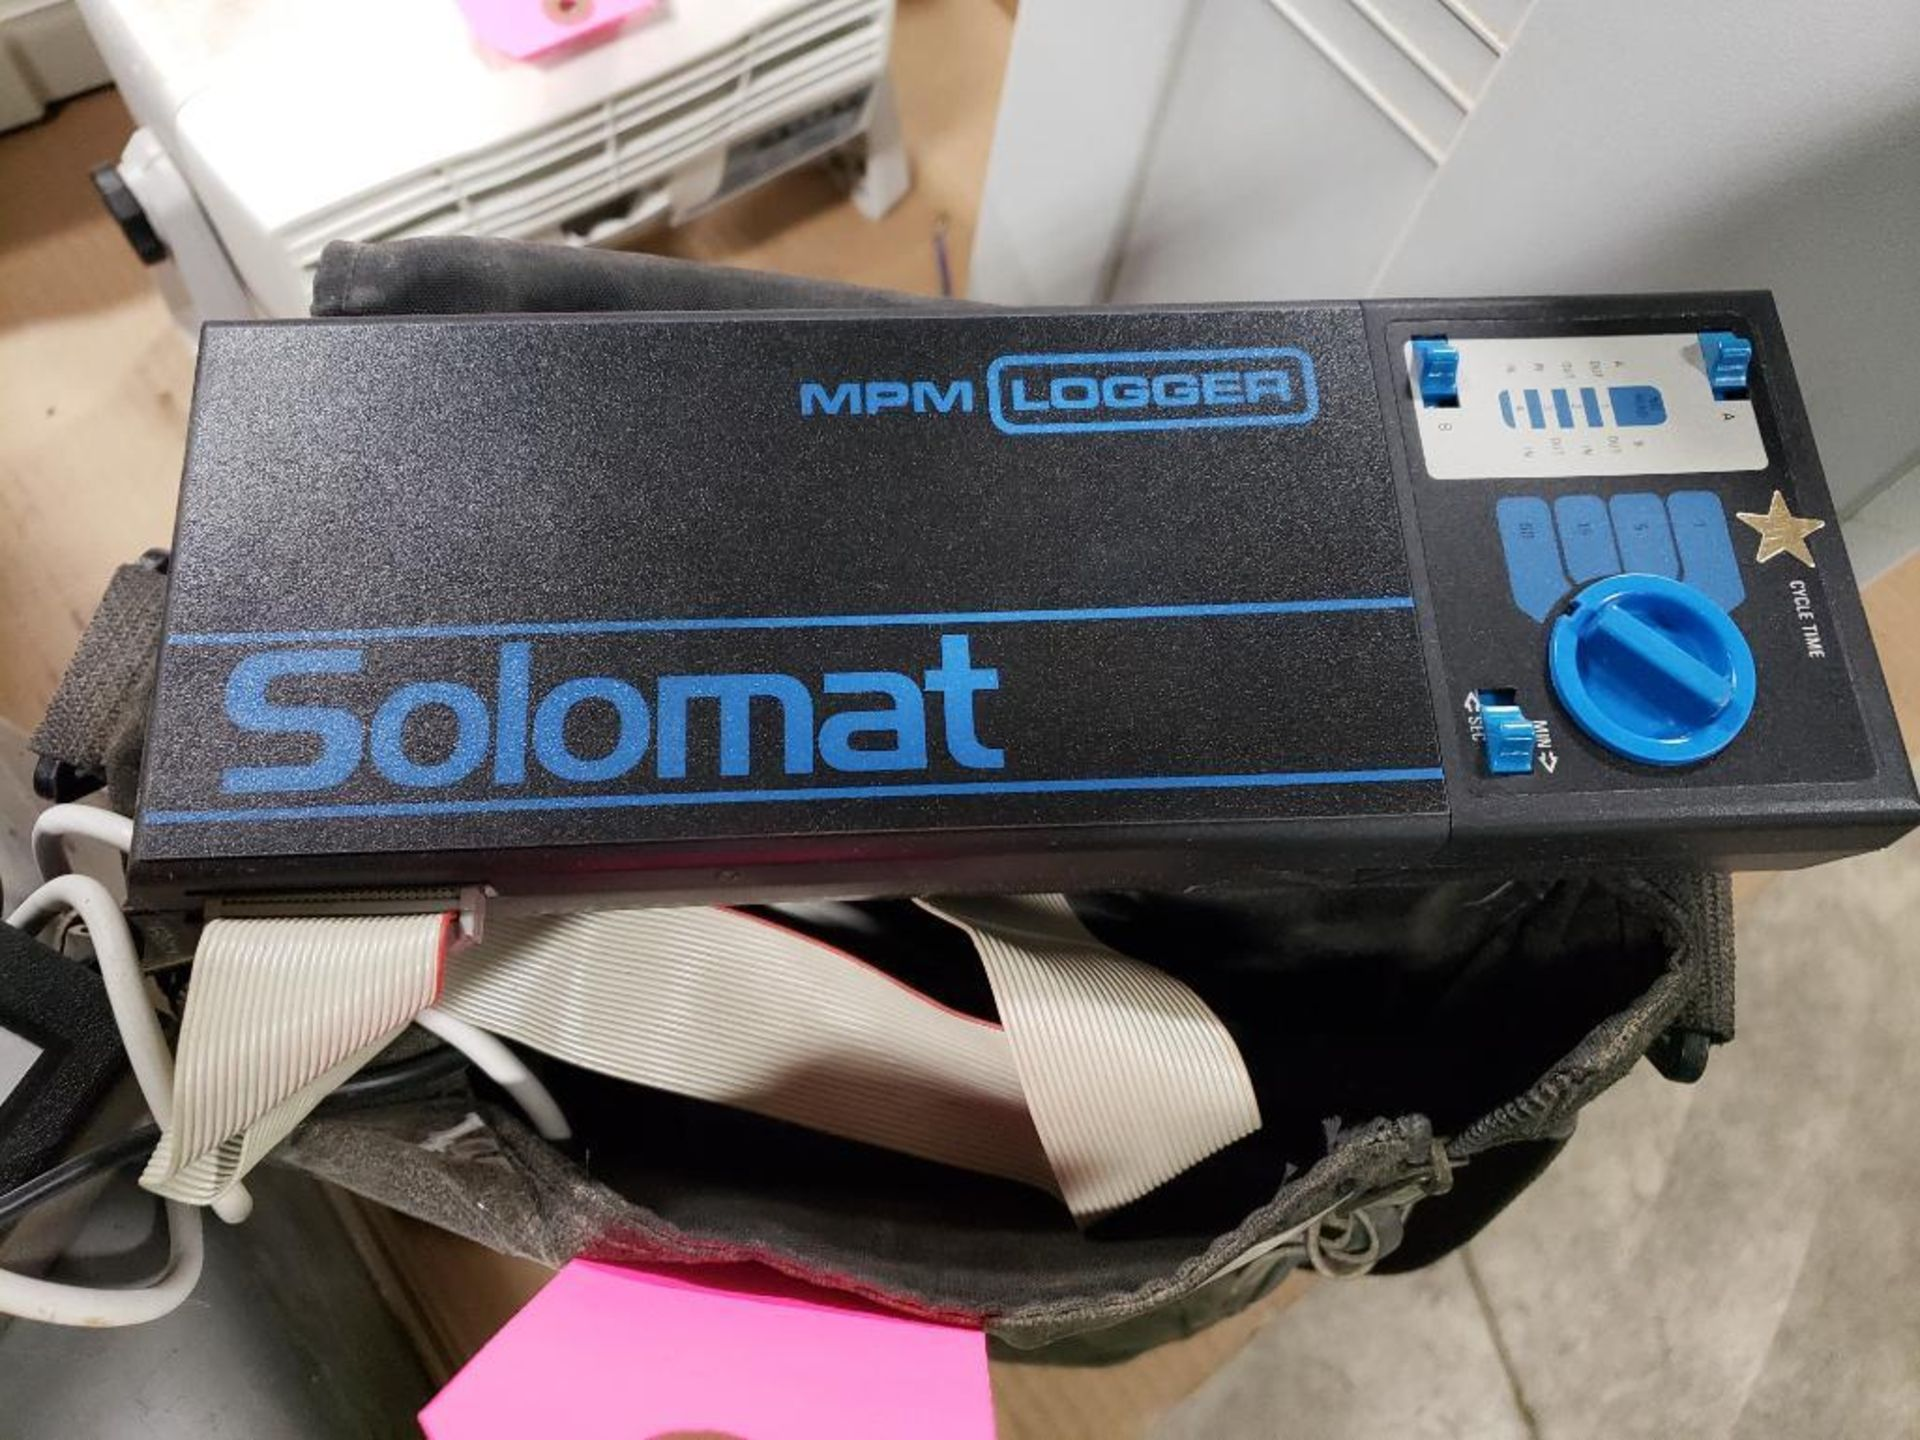 Solomat MPM Logger MPM-2000. With case. - Image 3 of 4